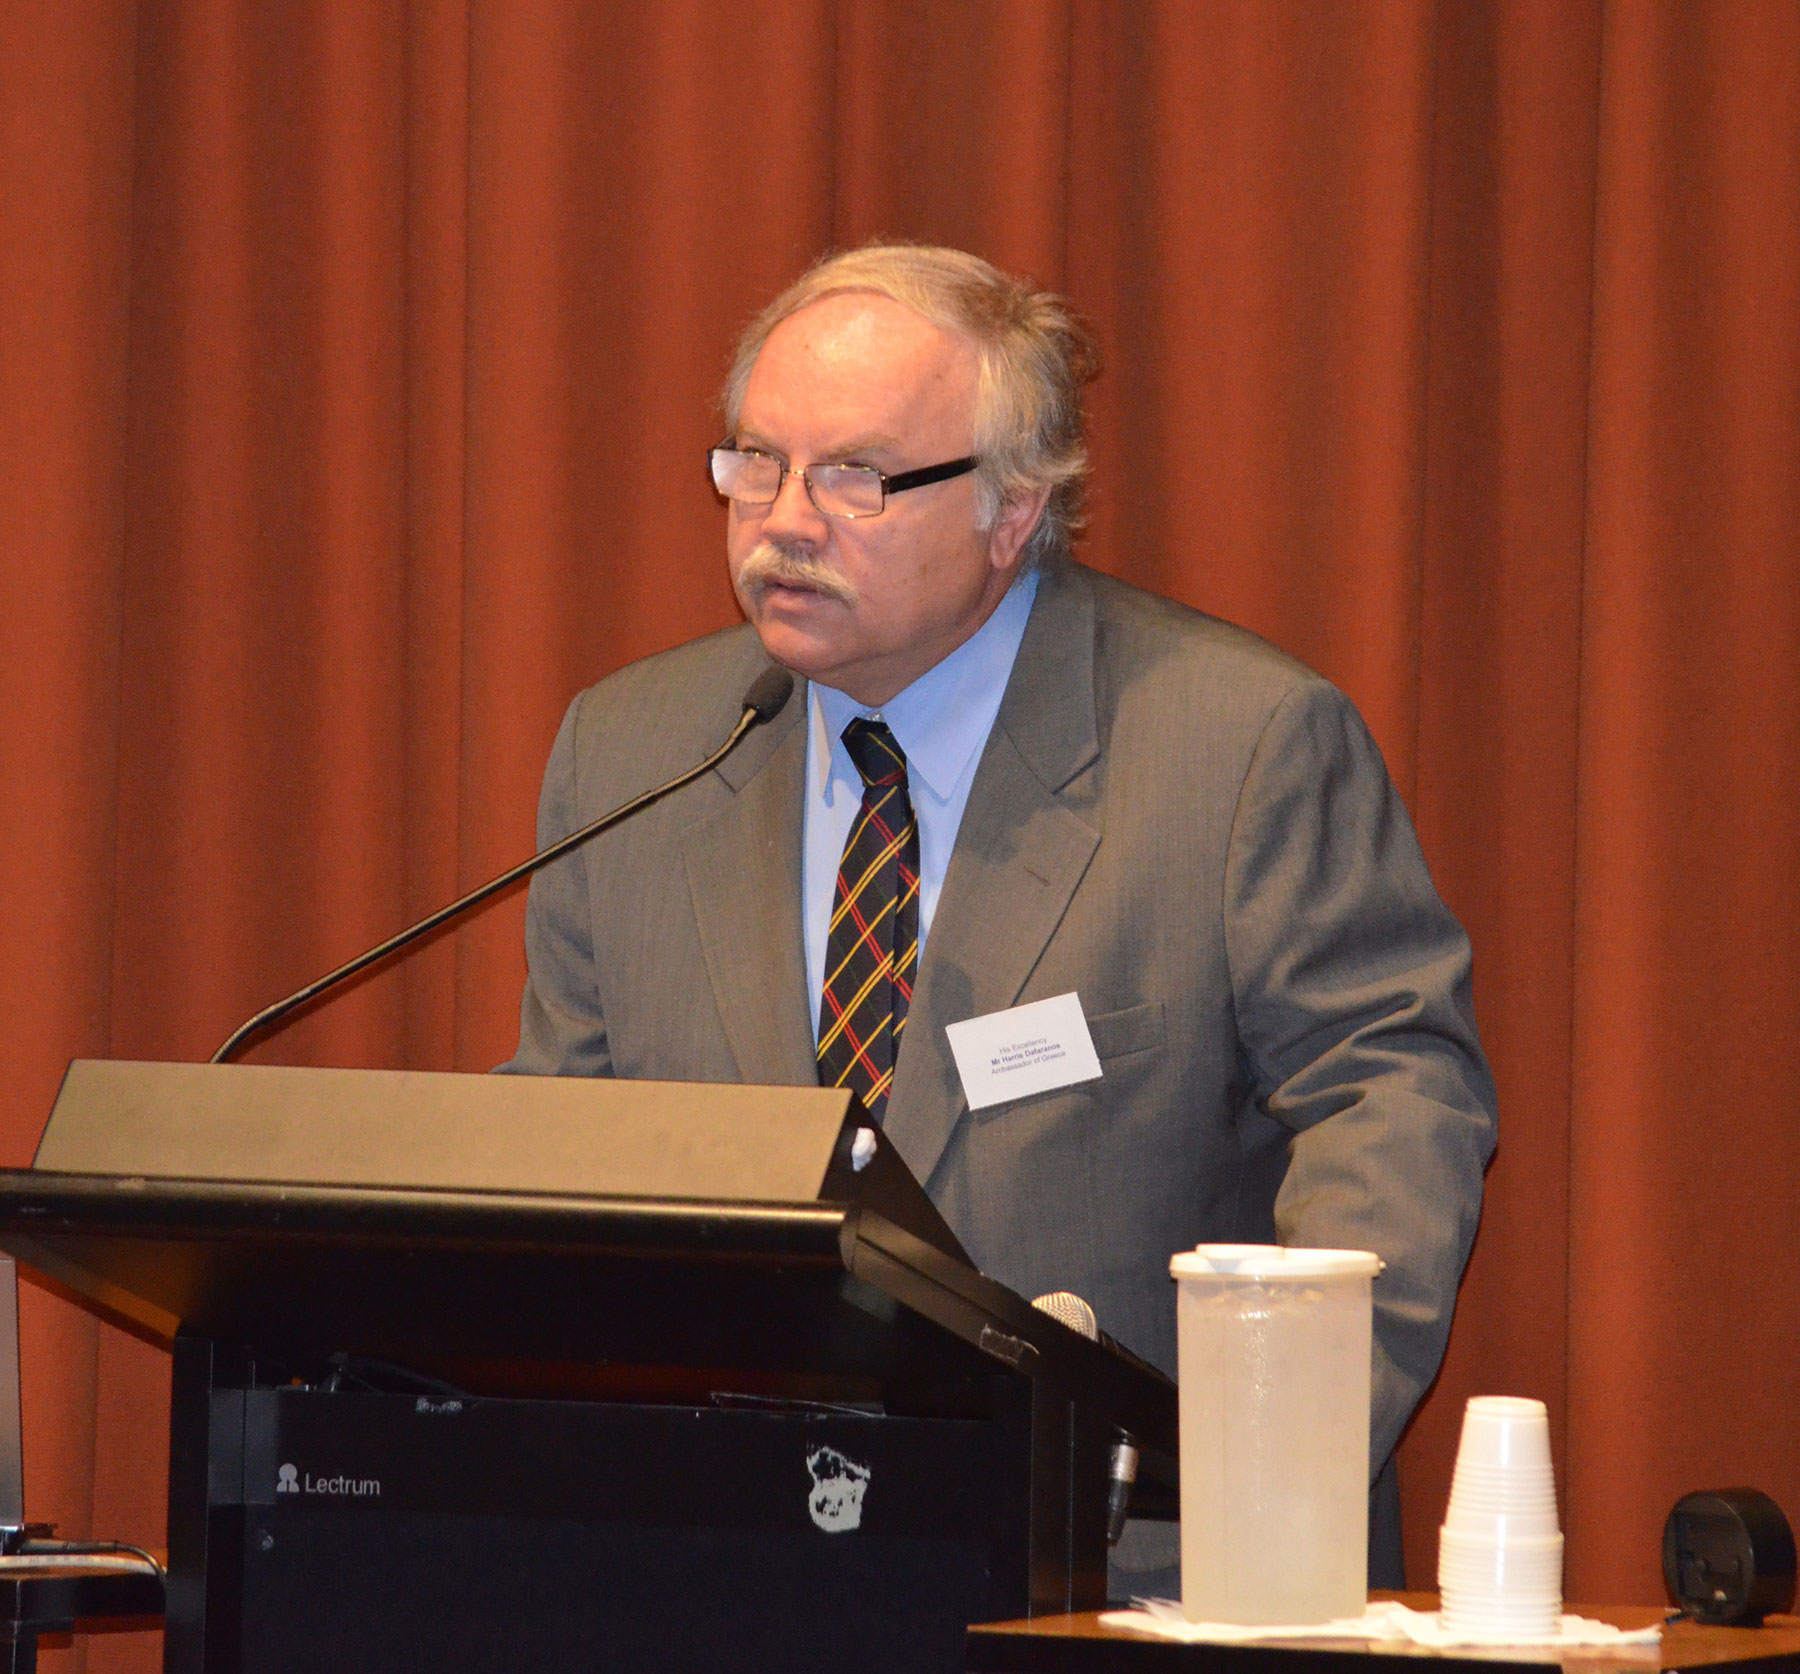 02 Symposium 6th Dec 2012. Greek Ambassador Mr Harris Dafaranos